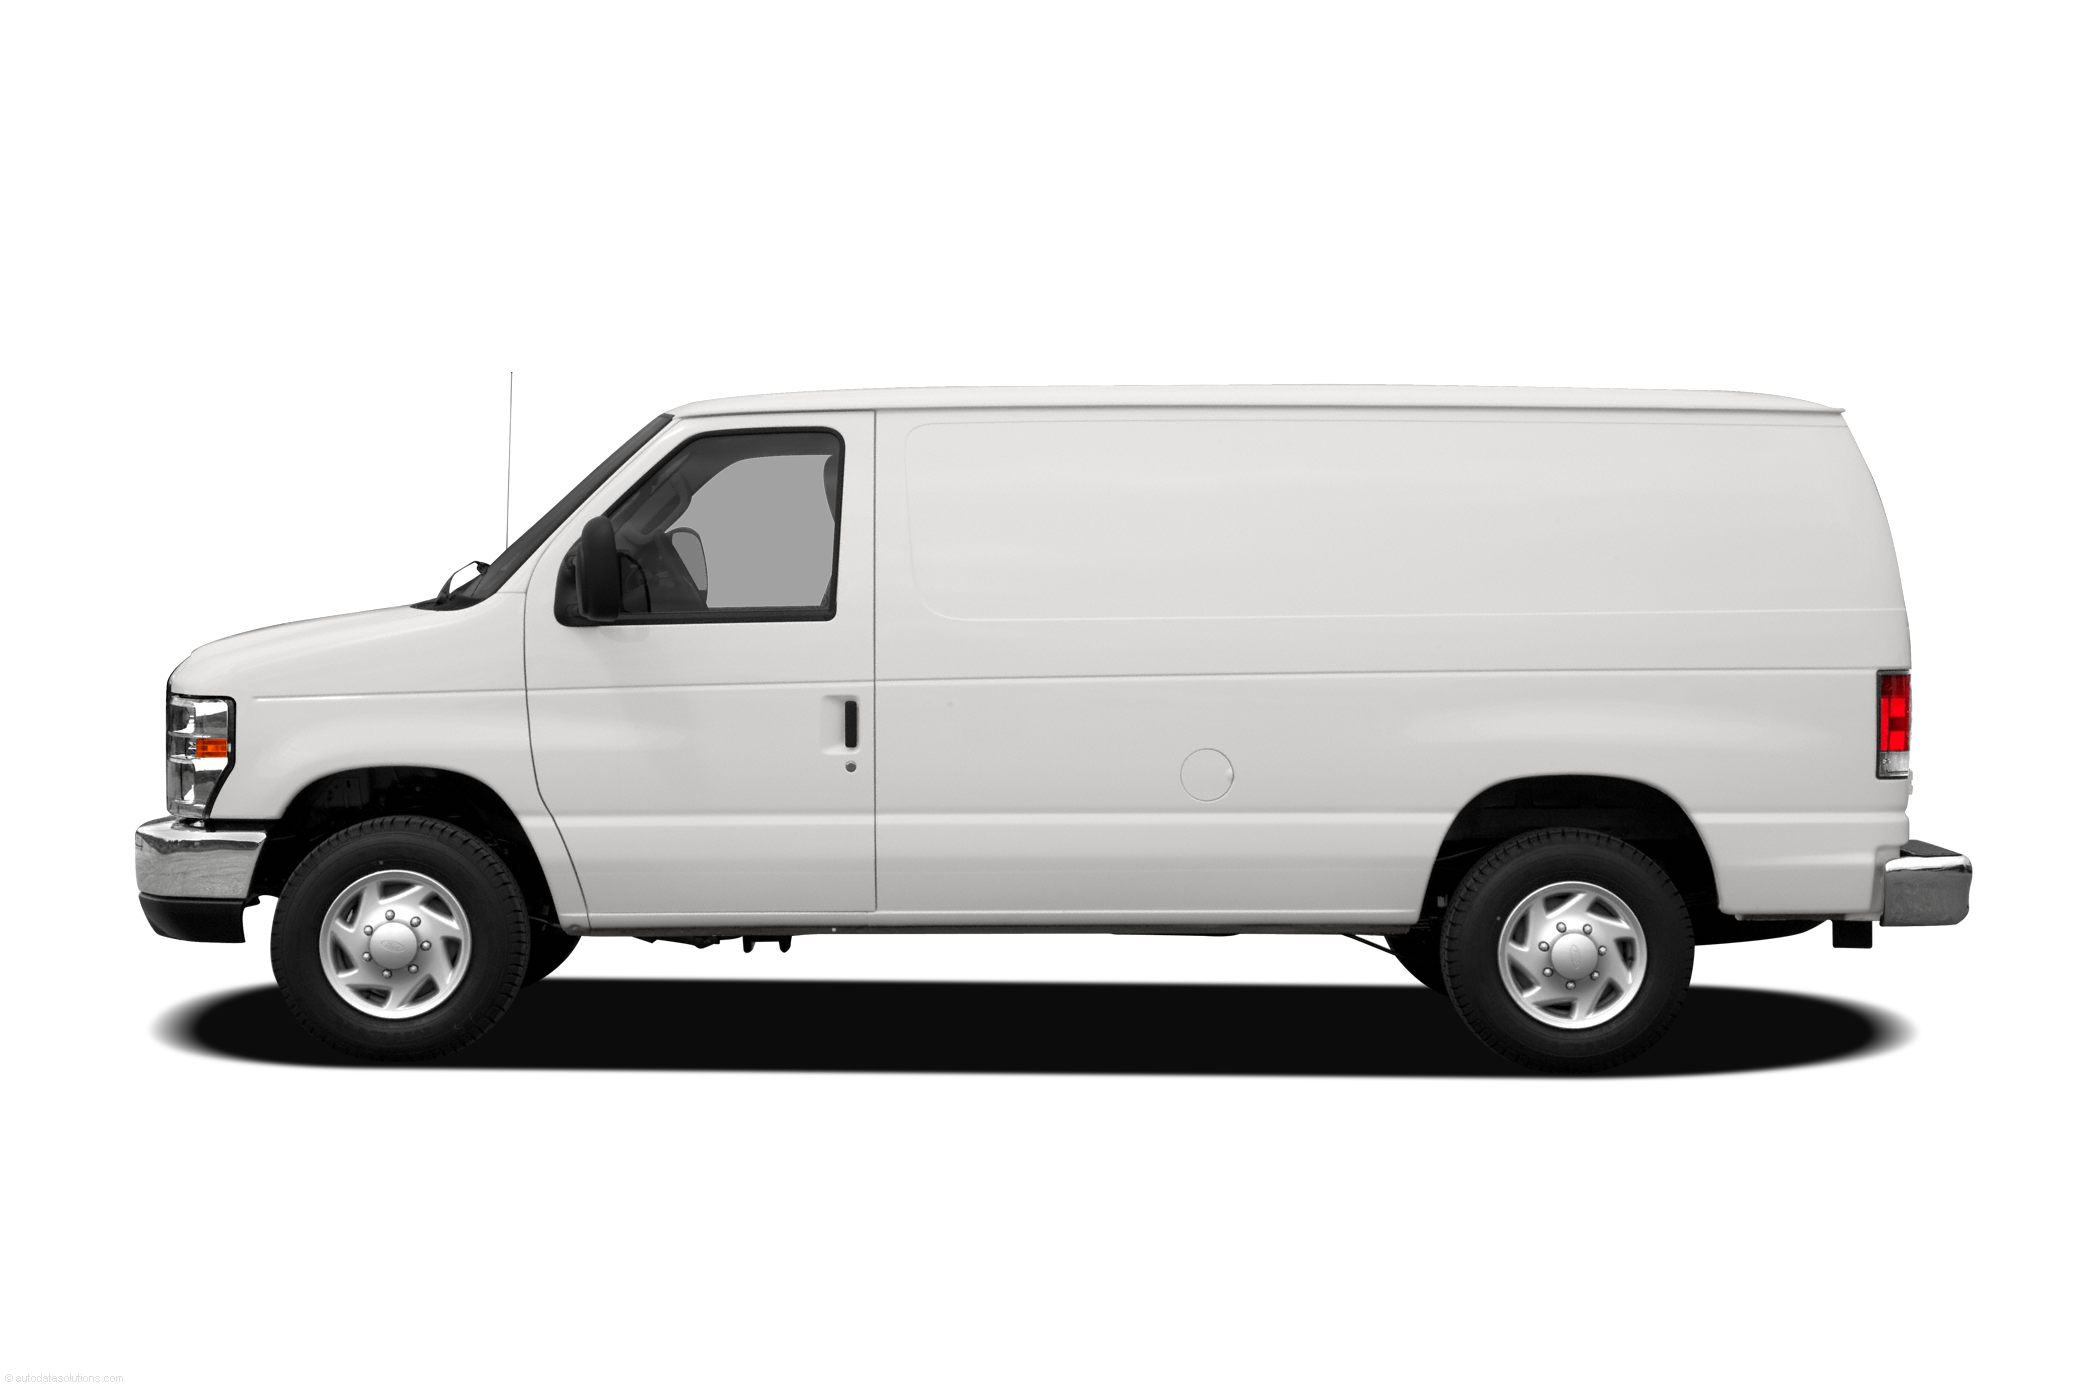 Chevy Express Van Transmissions For 2011 Vehicles Added To